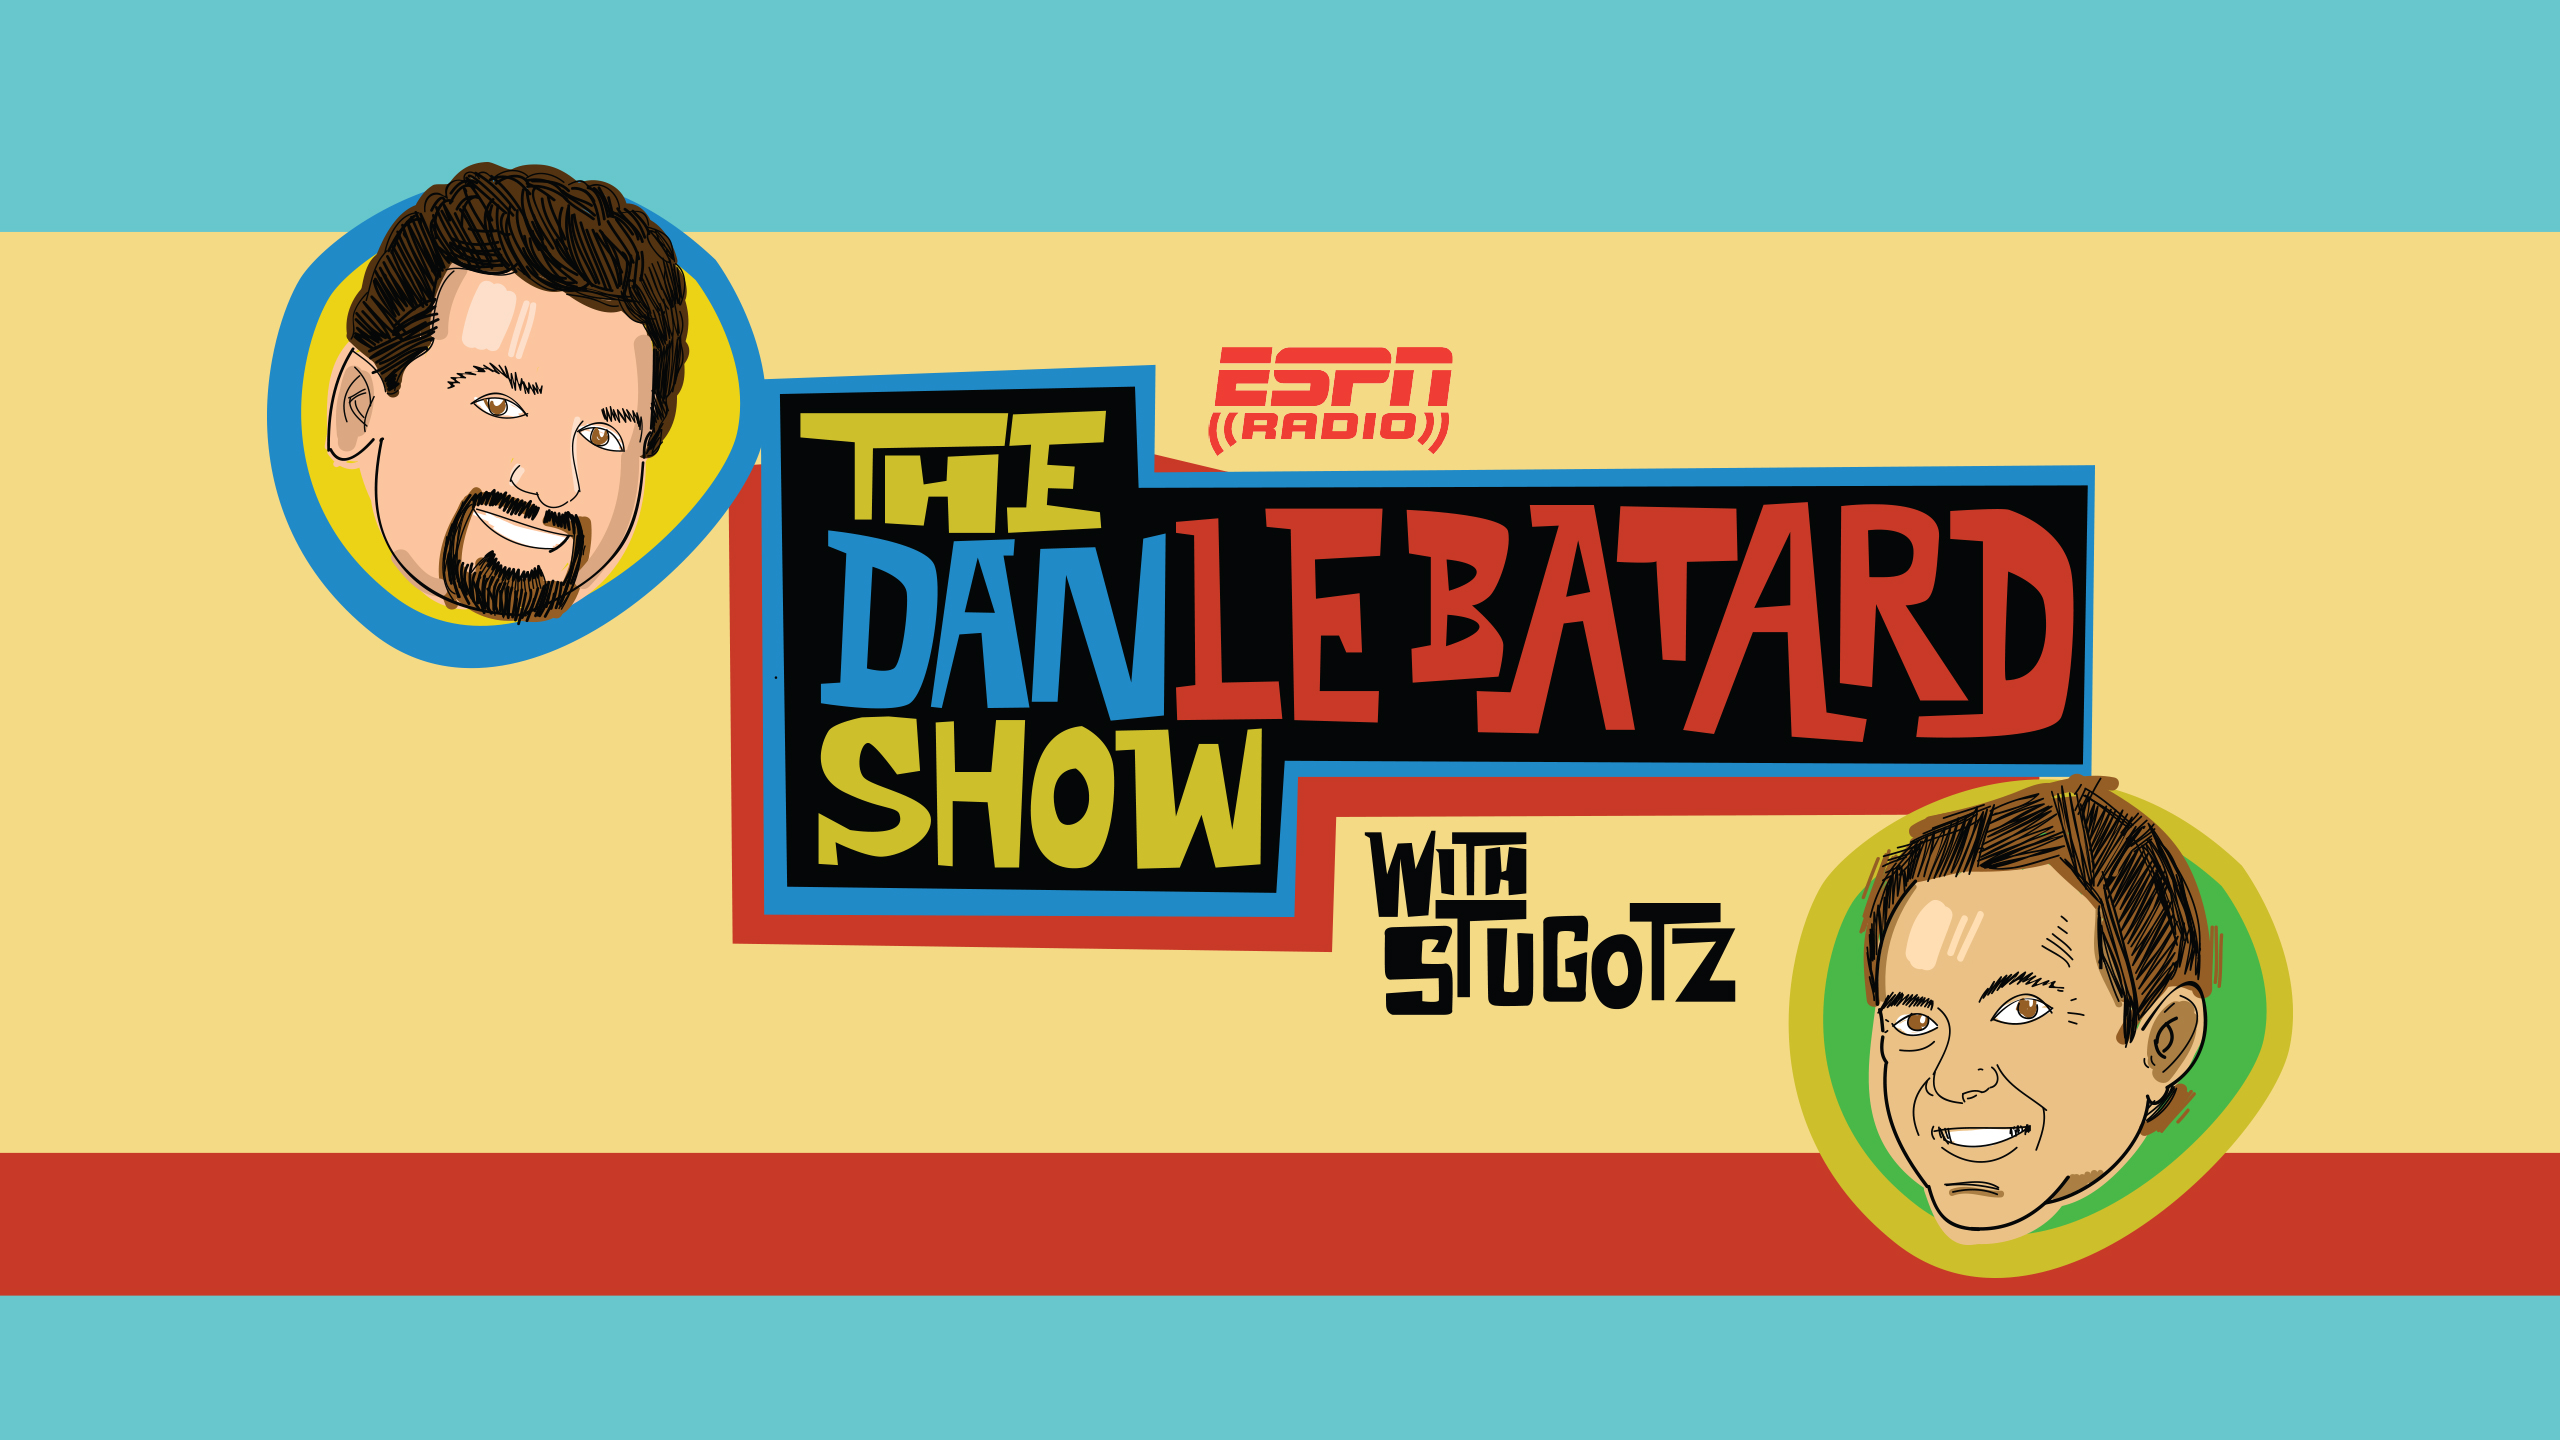 Fri, 10/19 - The Dan Le Batard Show with Stugotz Presented by Progressive